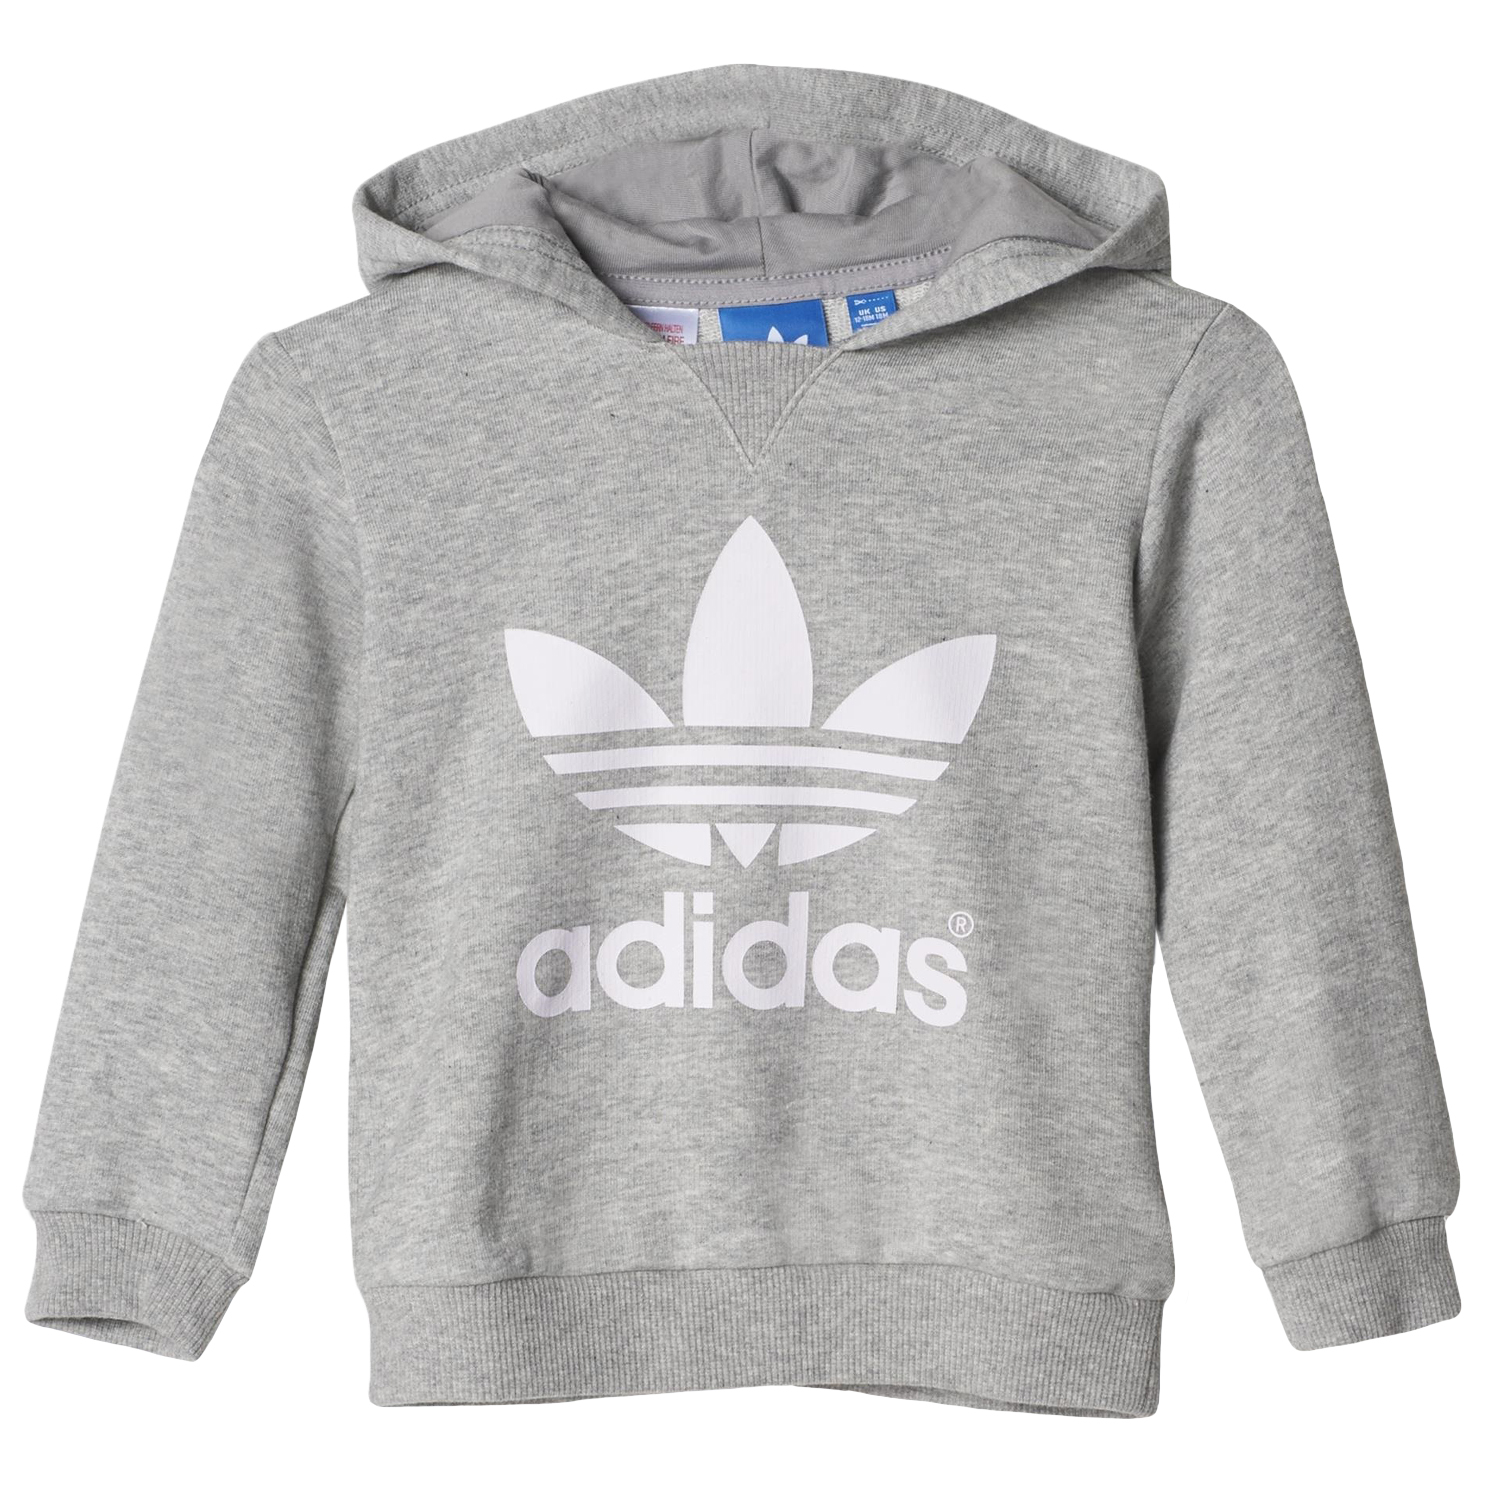 Buy adidas sweater kids cheap > OFF60% Discounted